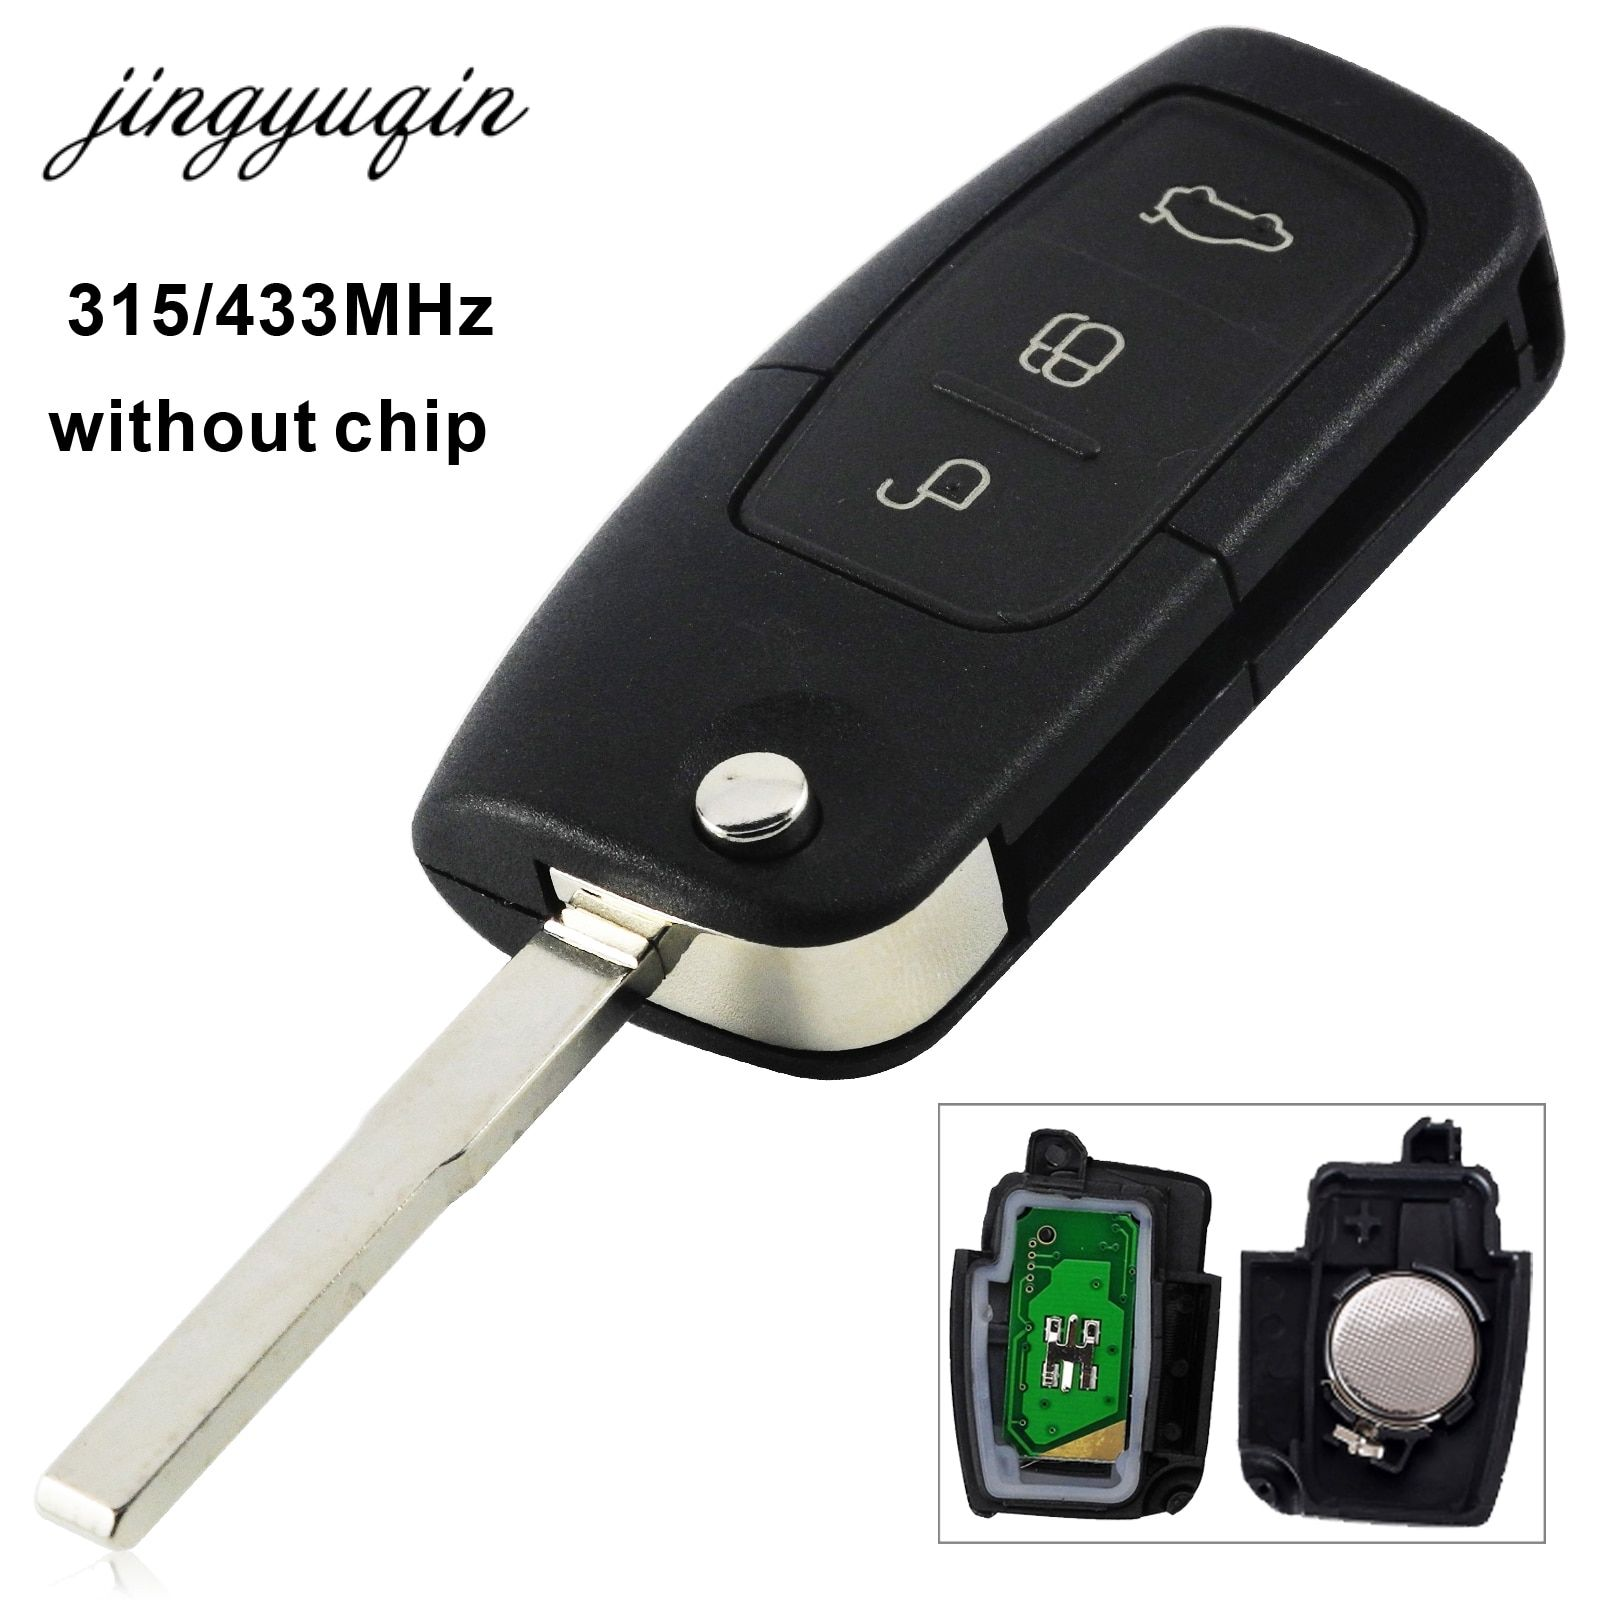 jingyuqin 315/433 MHz 3 Button Keyless Entry Remote Key Fob For Ford Focus Mondeo C Max S Max Galaxy Fiesta HU101 Blade